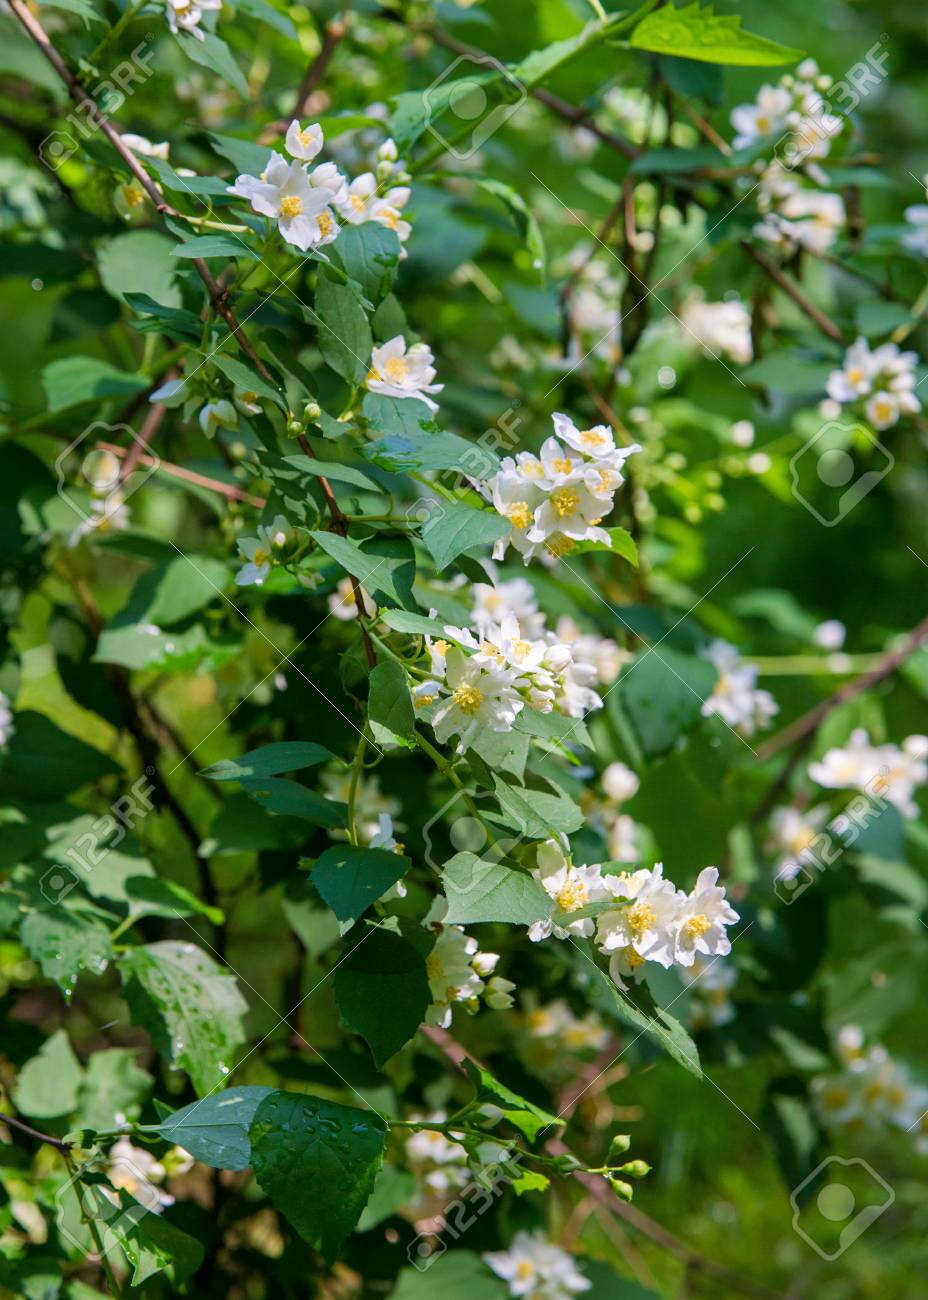 Jasmine Flowers An Old World Shrub Or Climbing Plant That Bears